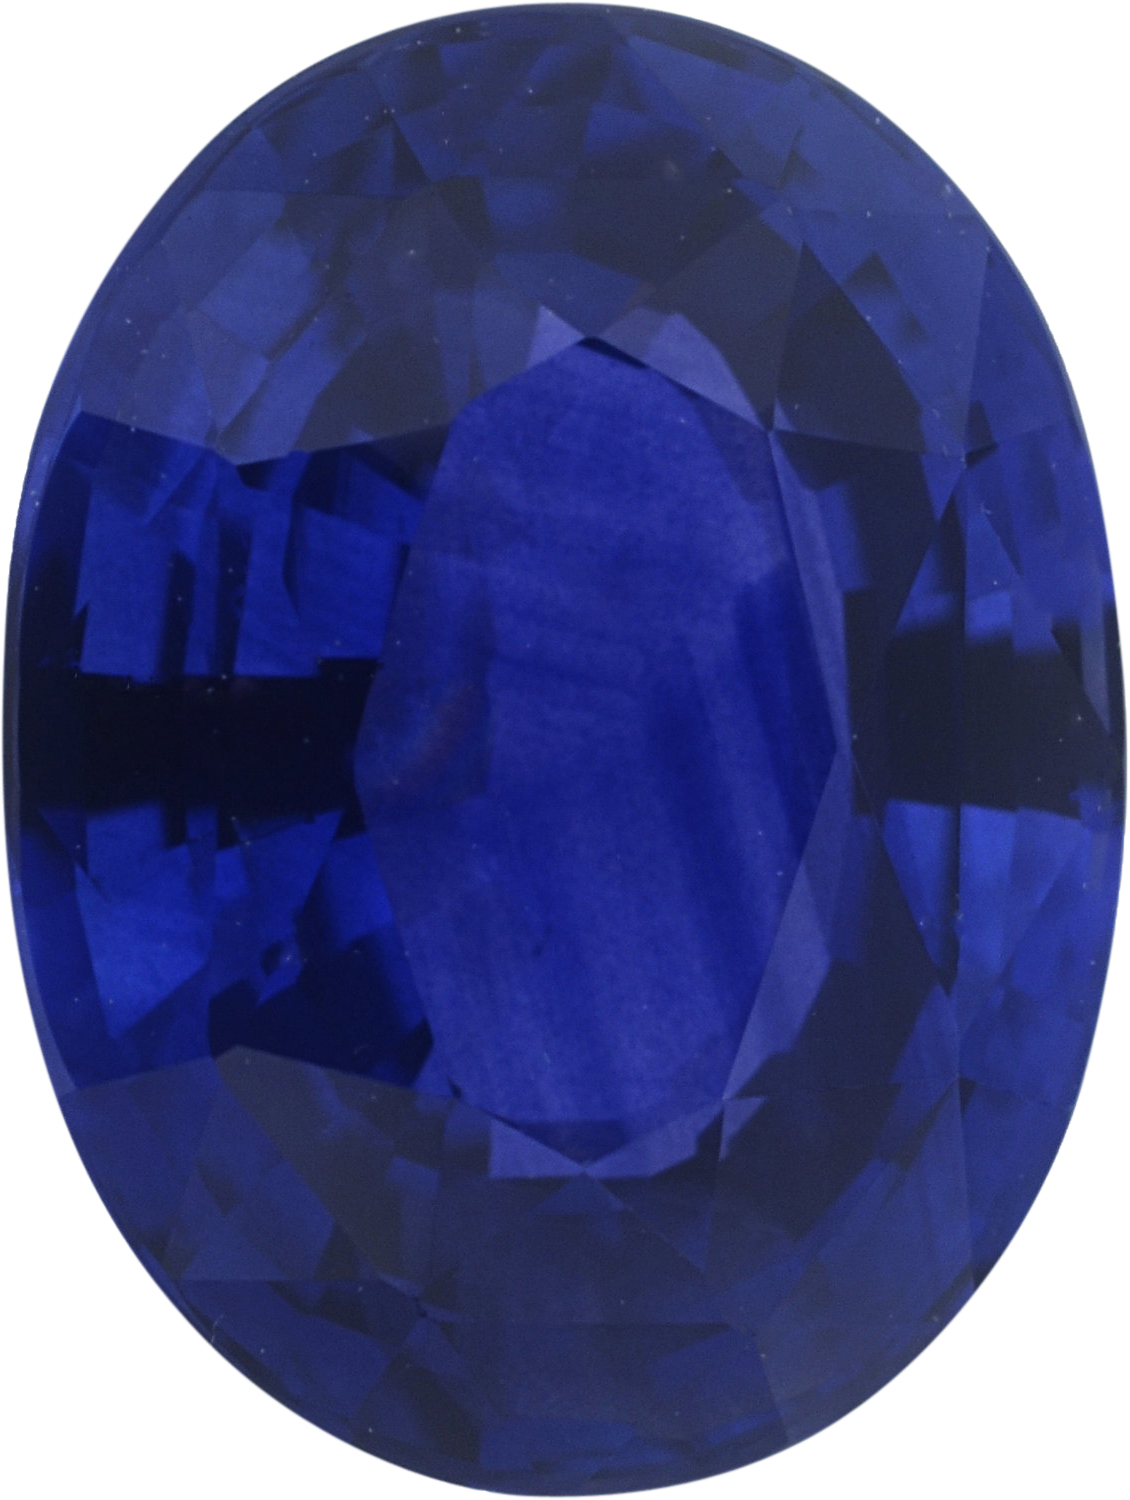 2.44 carats Blue Loose Sapphire Gemstone in Oval Cut, 8.92 x 6.8 mm